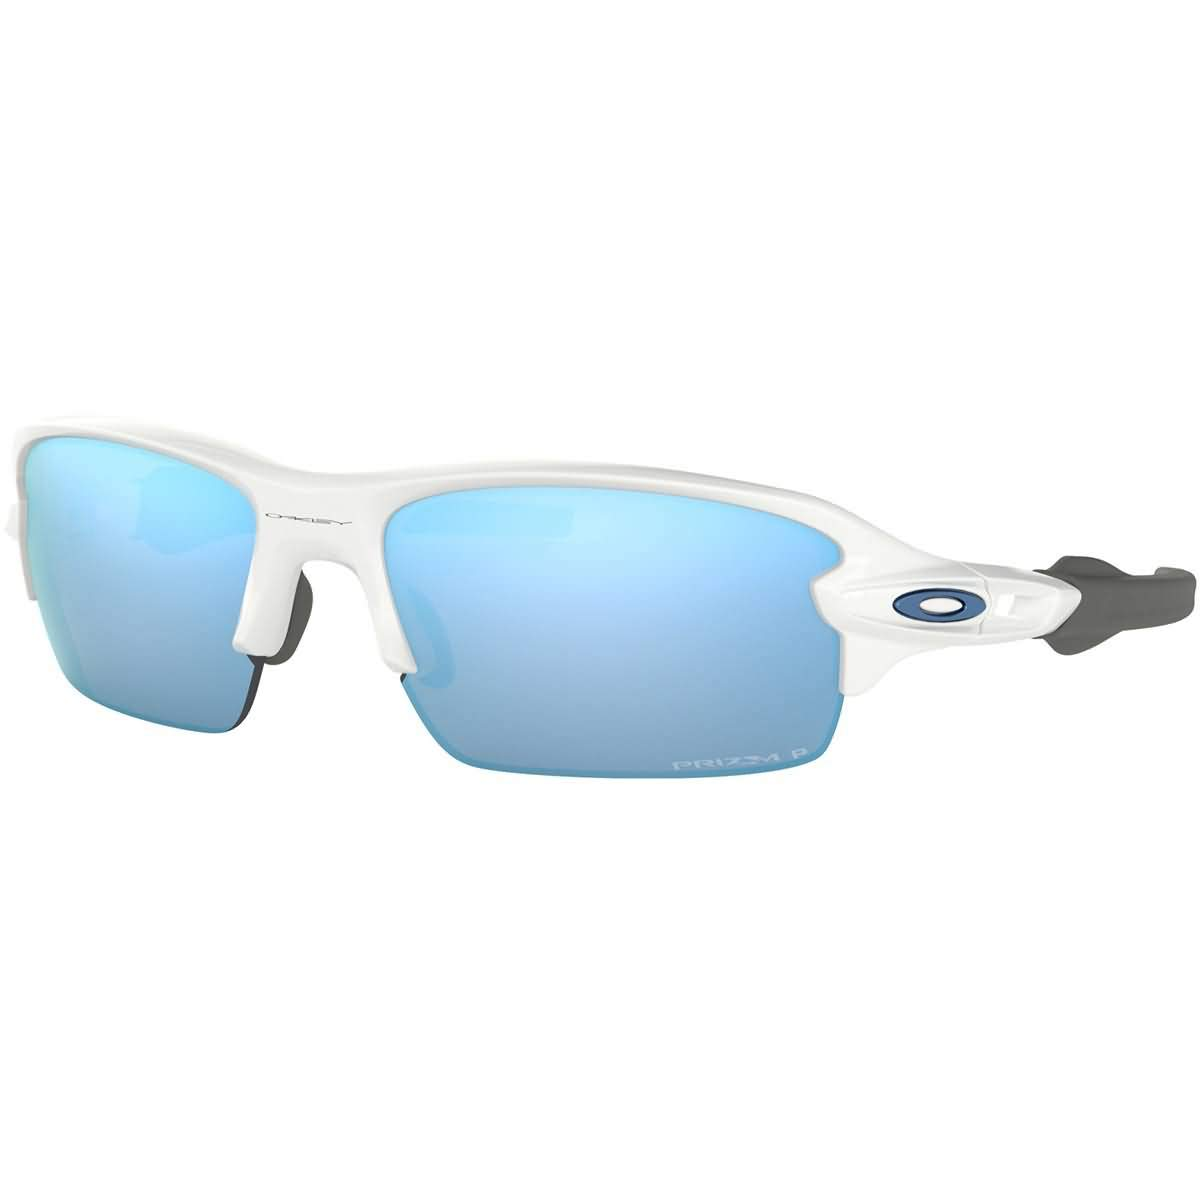 Oakley Boys OJ9005 Flak XS Rectangular Sunglasses, Polished White/Prizm Deep H2O Polarized, 59 mm by Oakley